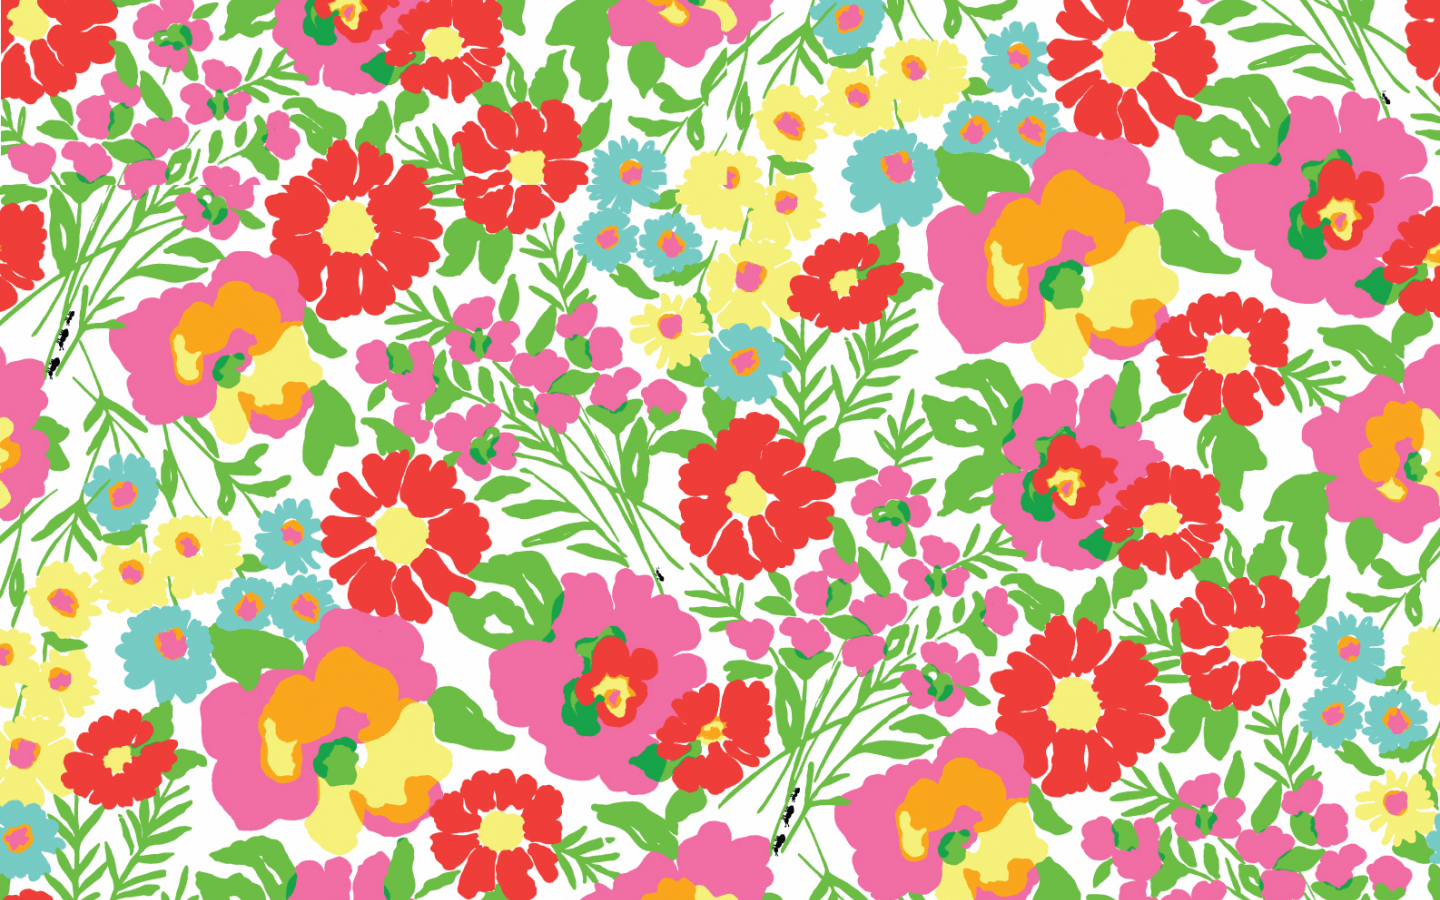 Free Download Lilly Pulitzer Desktop Backgrounds 1586x1412 For